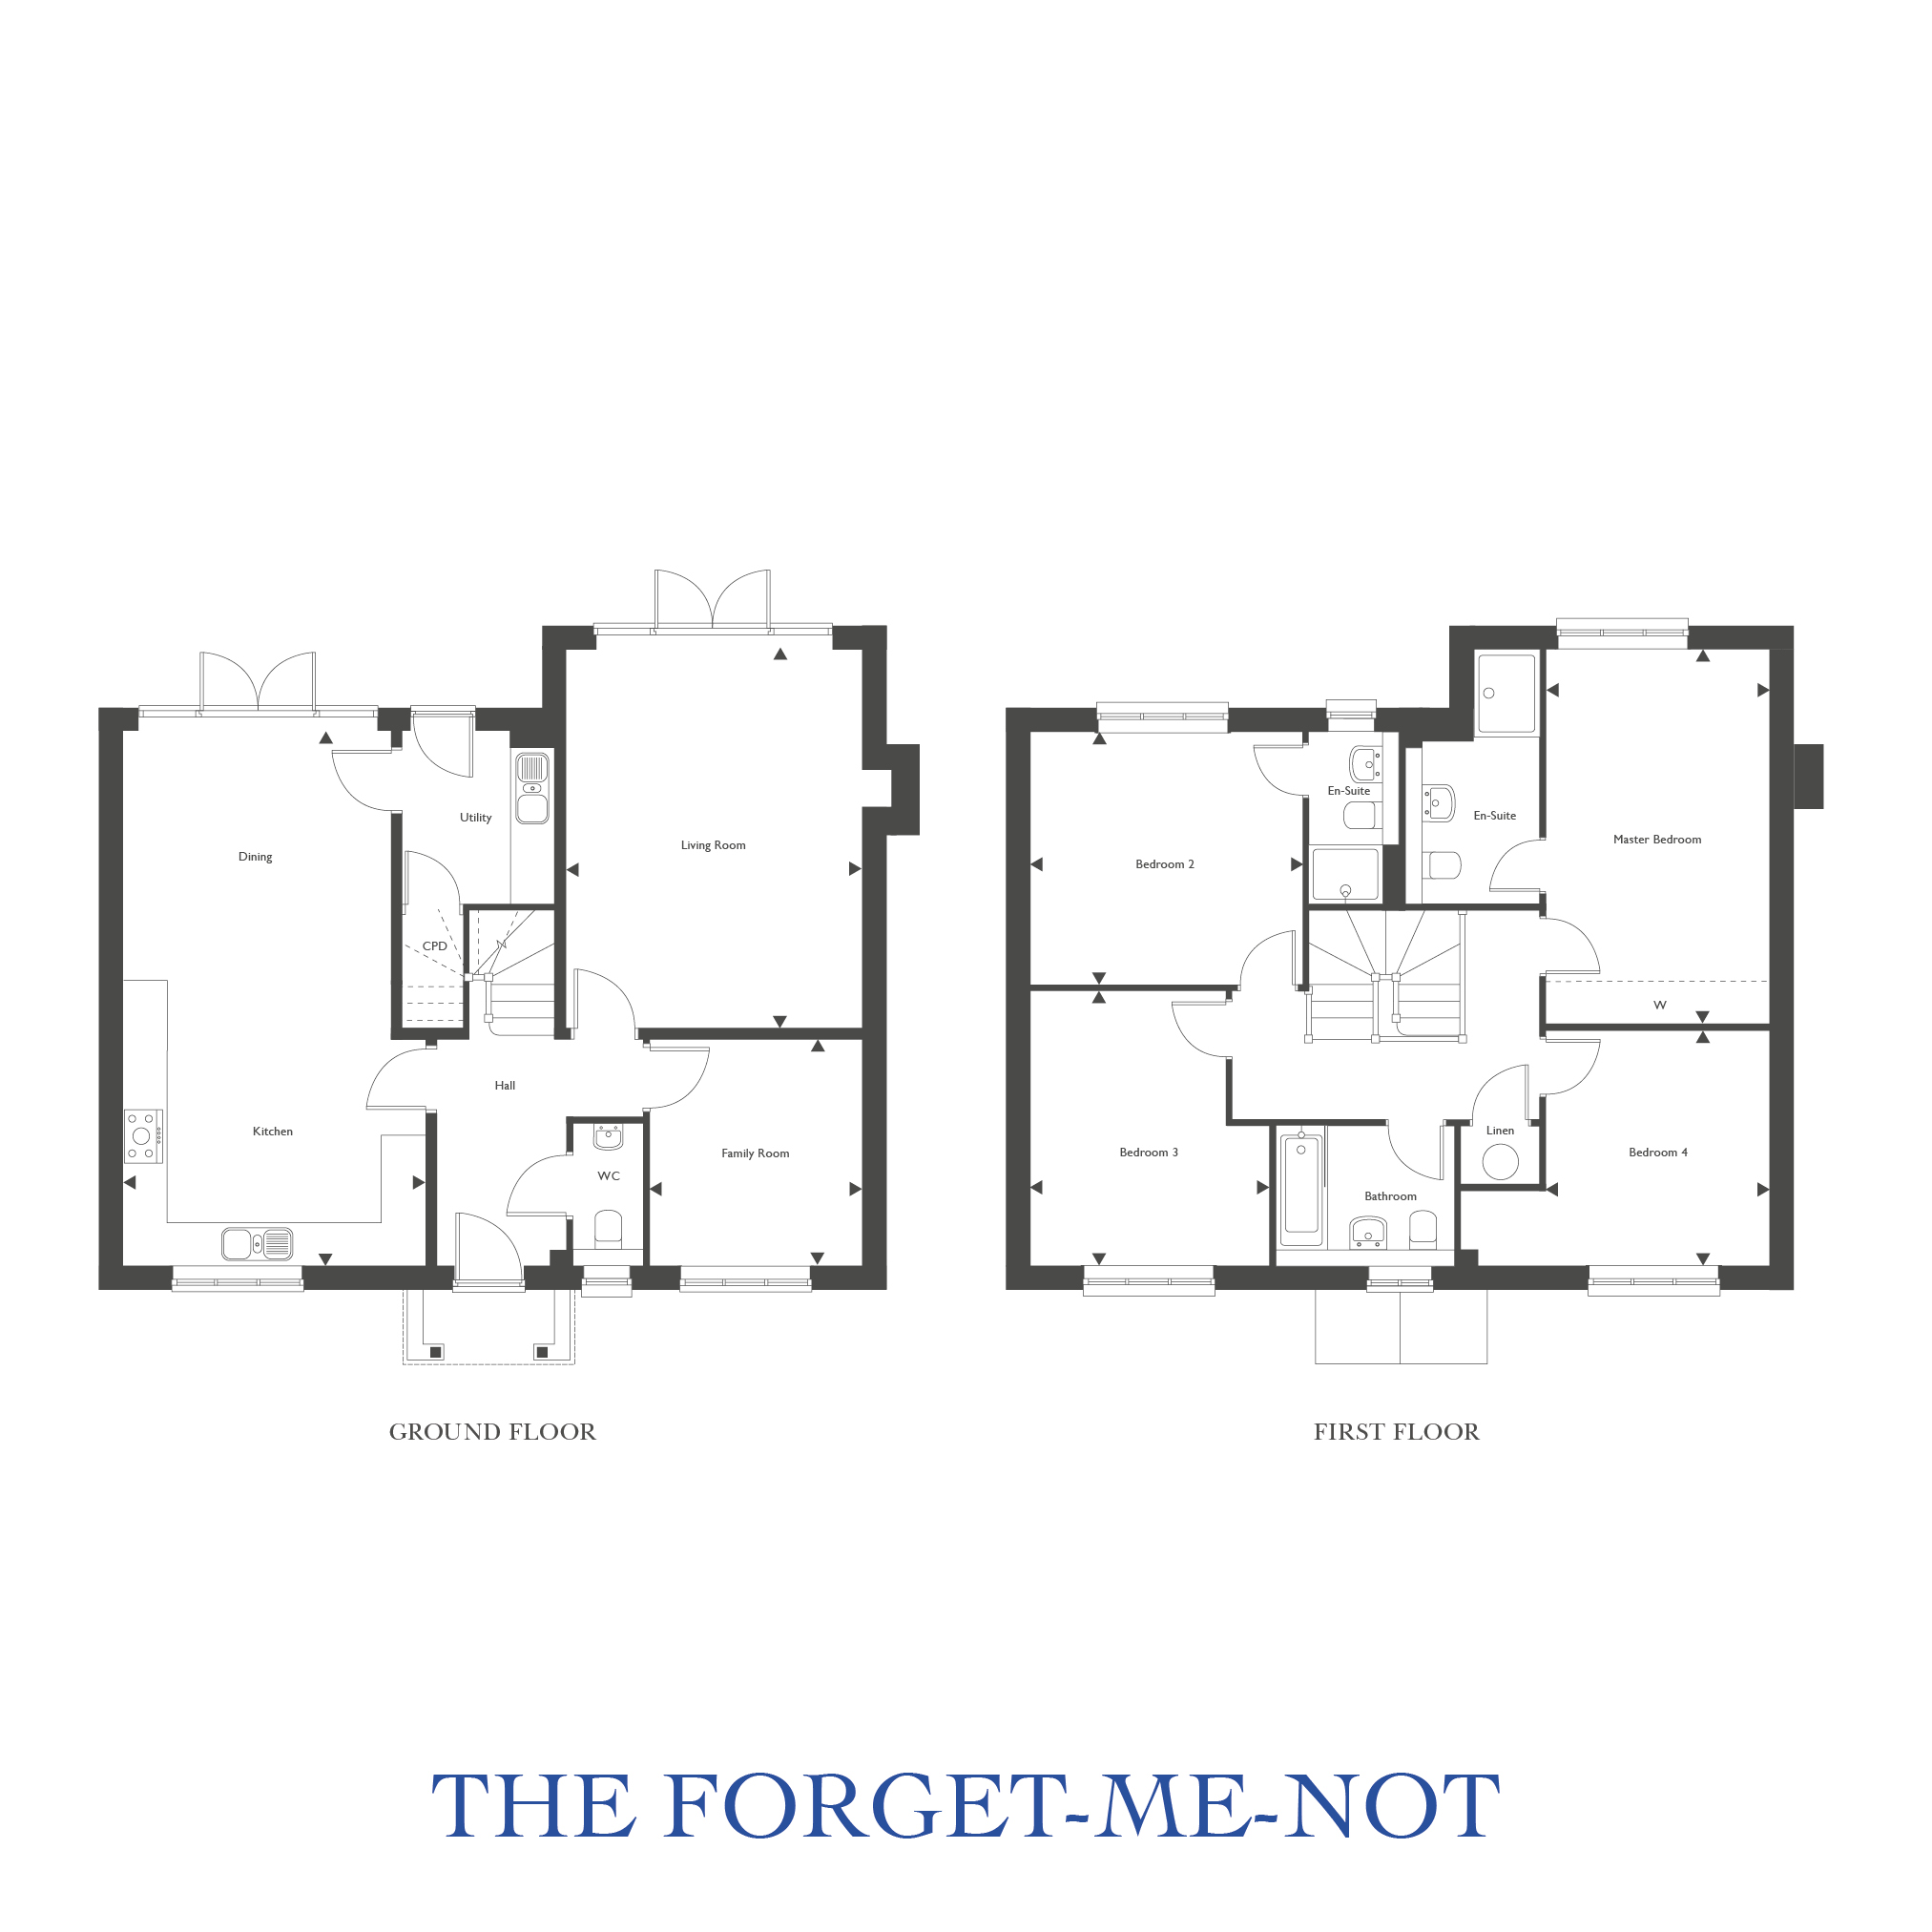 Plot 39 – The Forget-Me-Not Floor plan